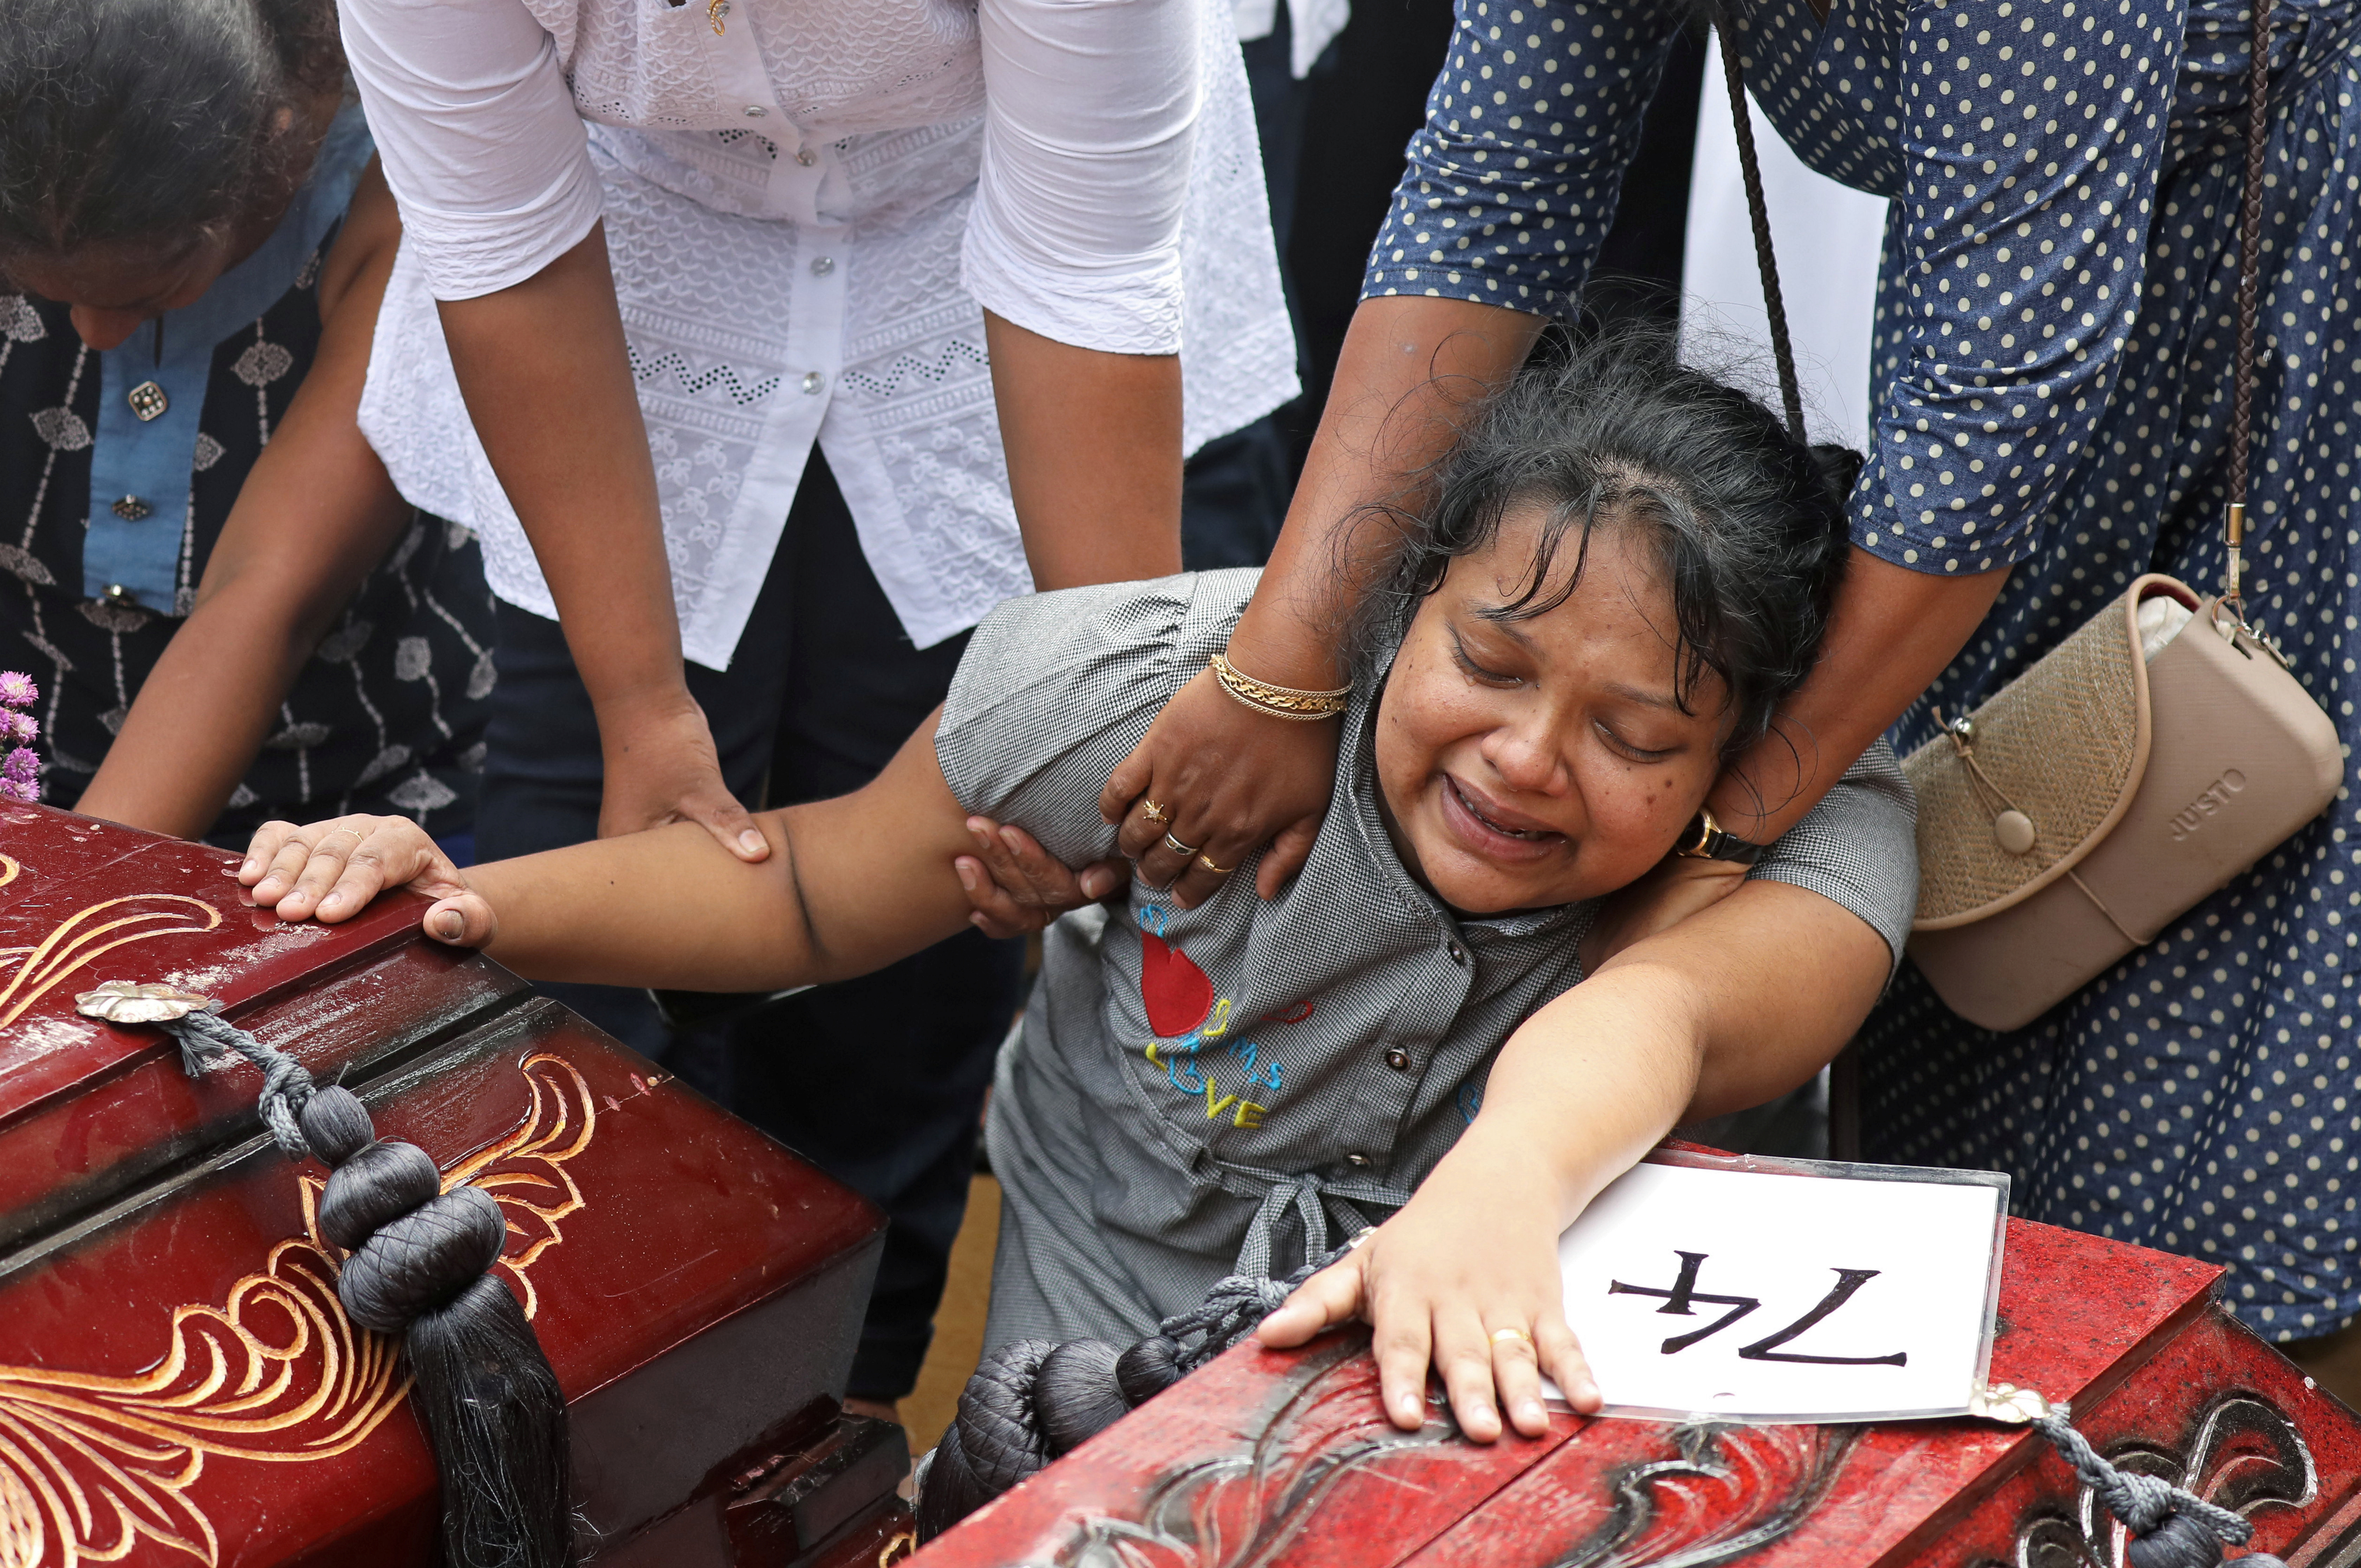 A woman reacts next to two coffins during a mass burial of victims, two days after a string of suicide bomb attacks on churches and luxury hotels across the island on Easter Sunday, at a cemetery near St. Sebastian Church in Negombo, Sri Lanka April 23, 2019. REUTERS/Athit Perawongmetha